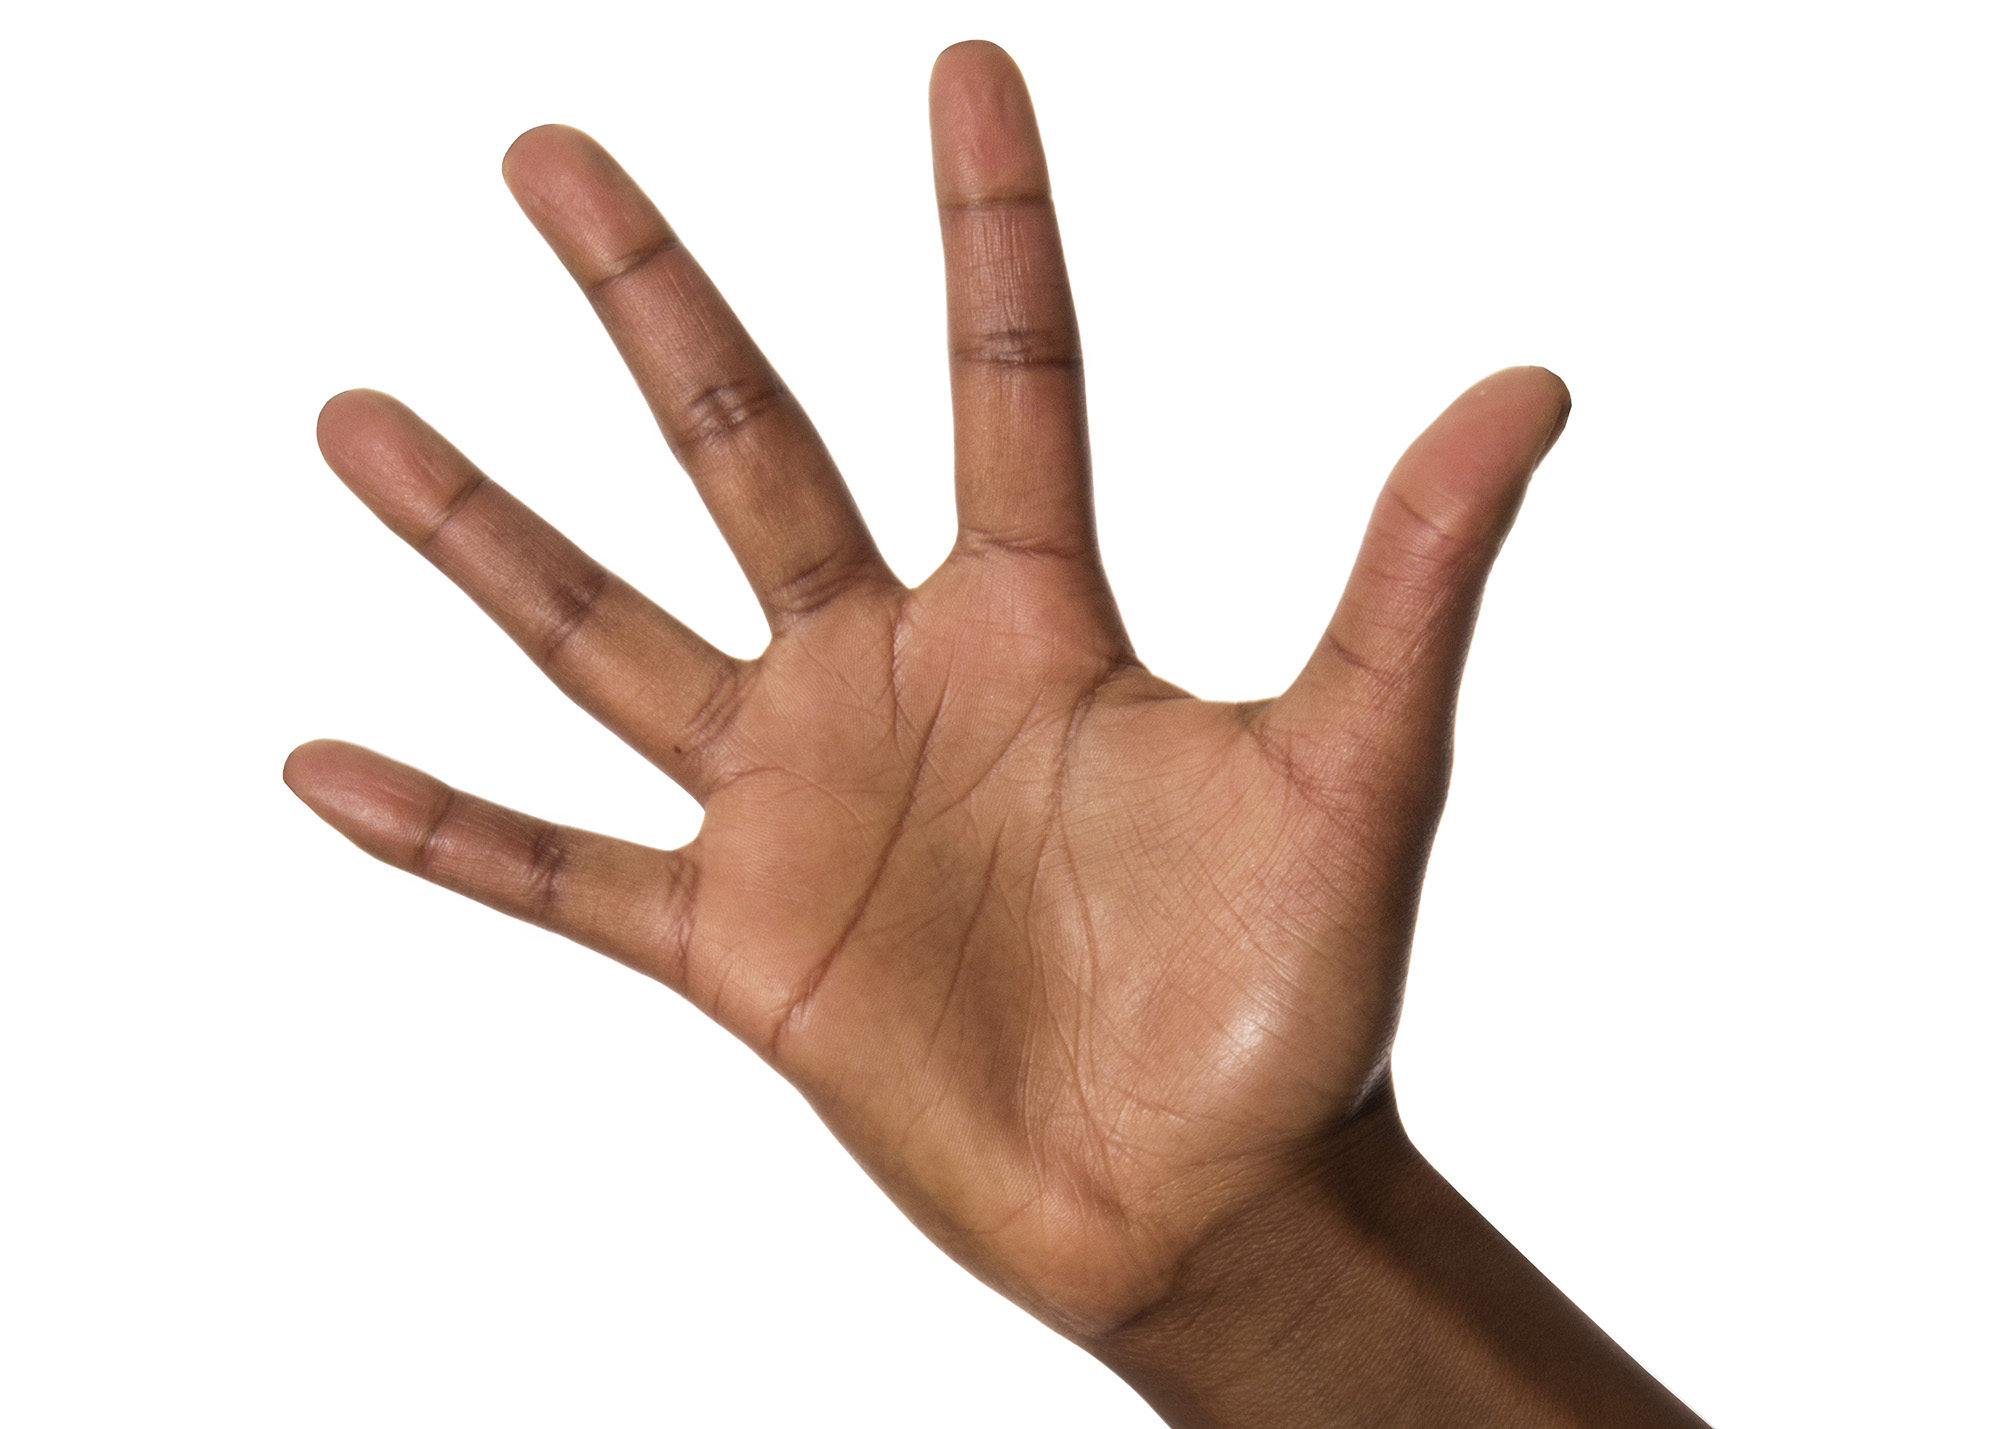 What does it mean when you have itchy palms?